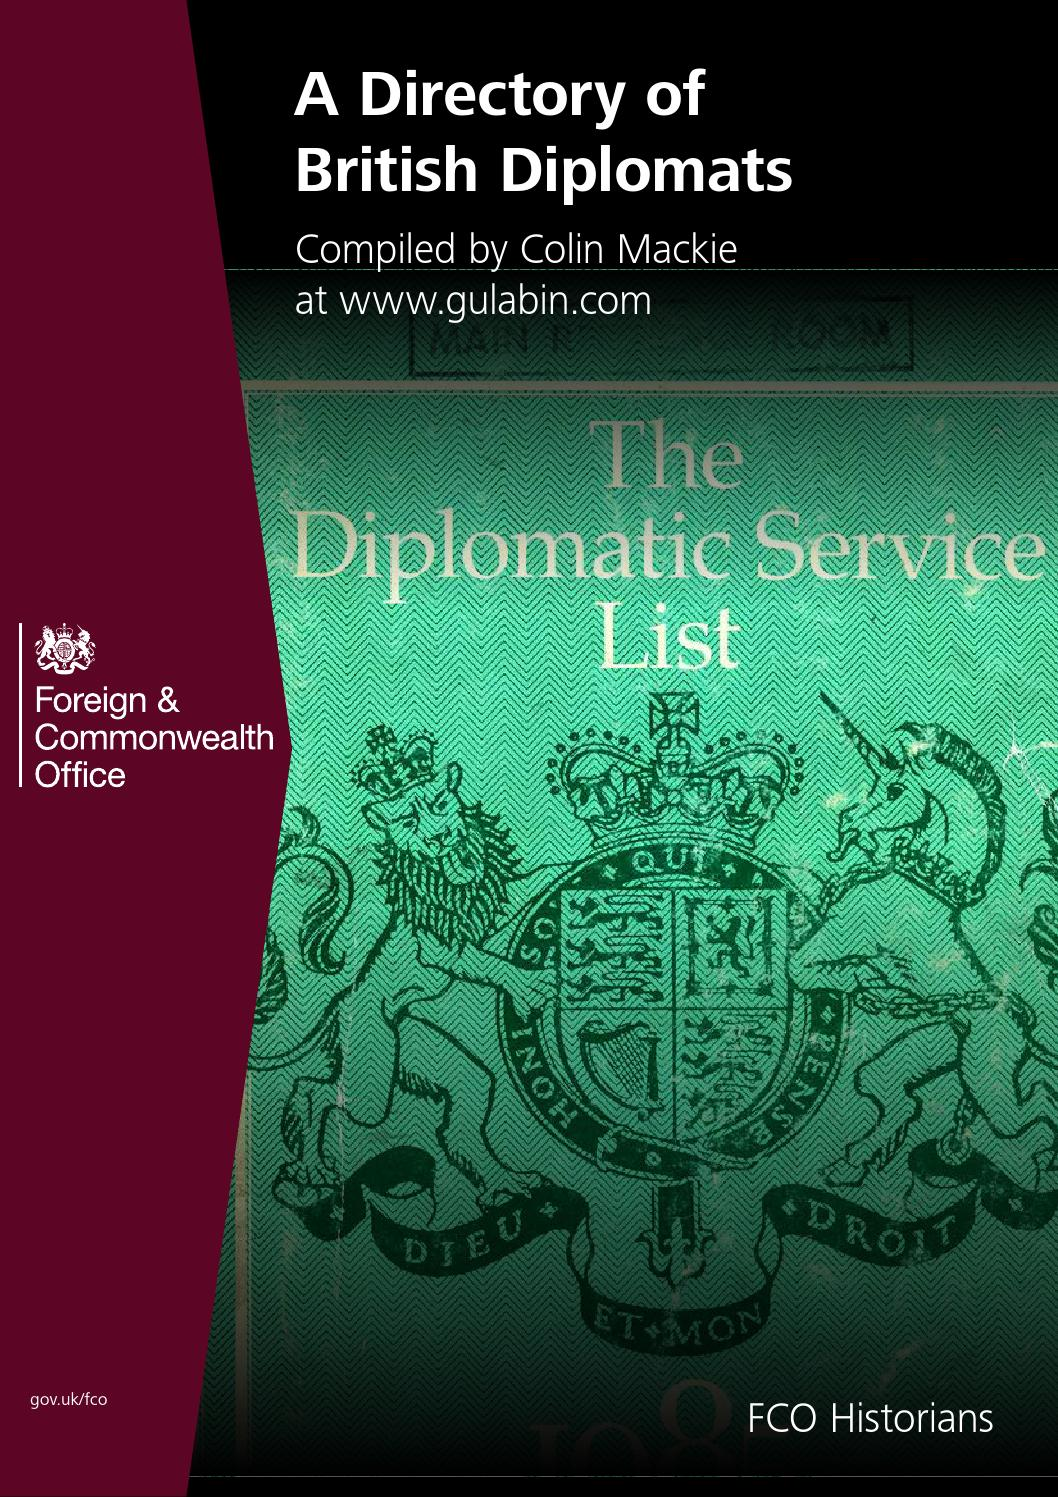 British Diplomats Directory: Part 1 of 4 by FCO Historians - issuu